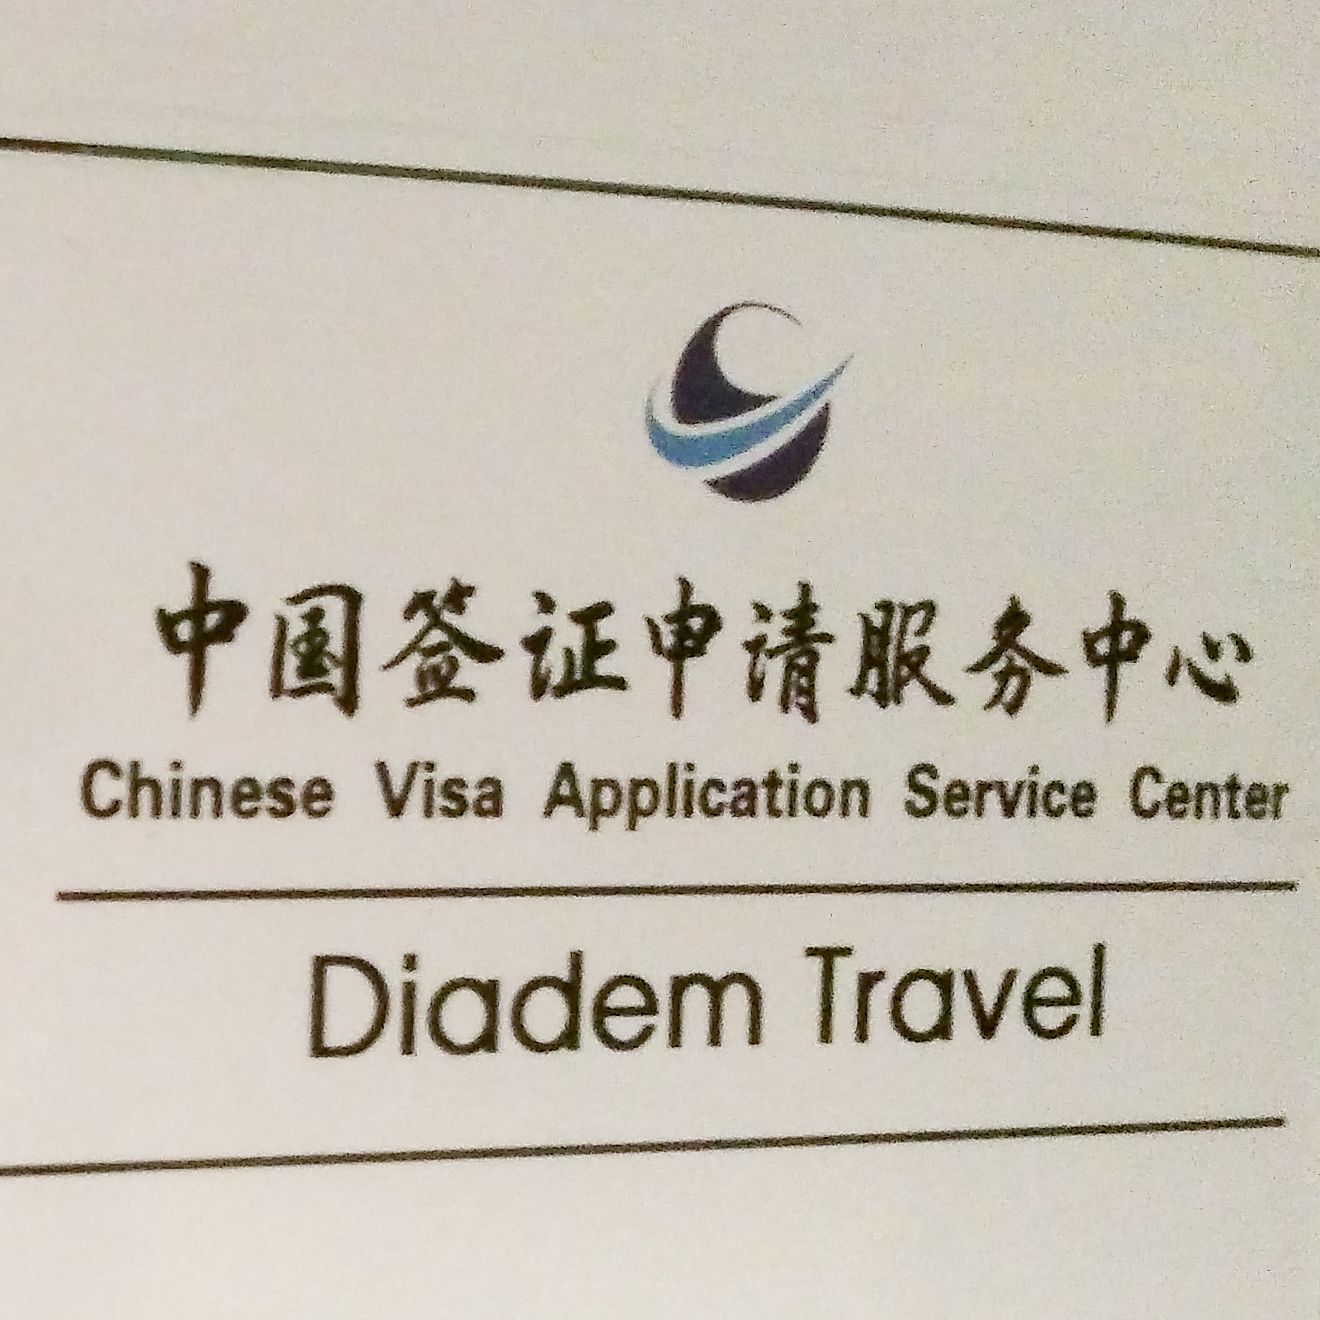 Chinese embassy, chinese visa, Brussels, expat, expat adventures, work travel